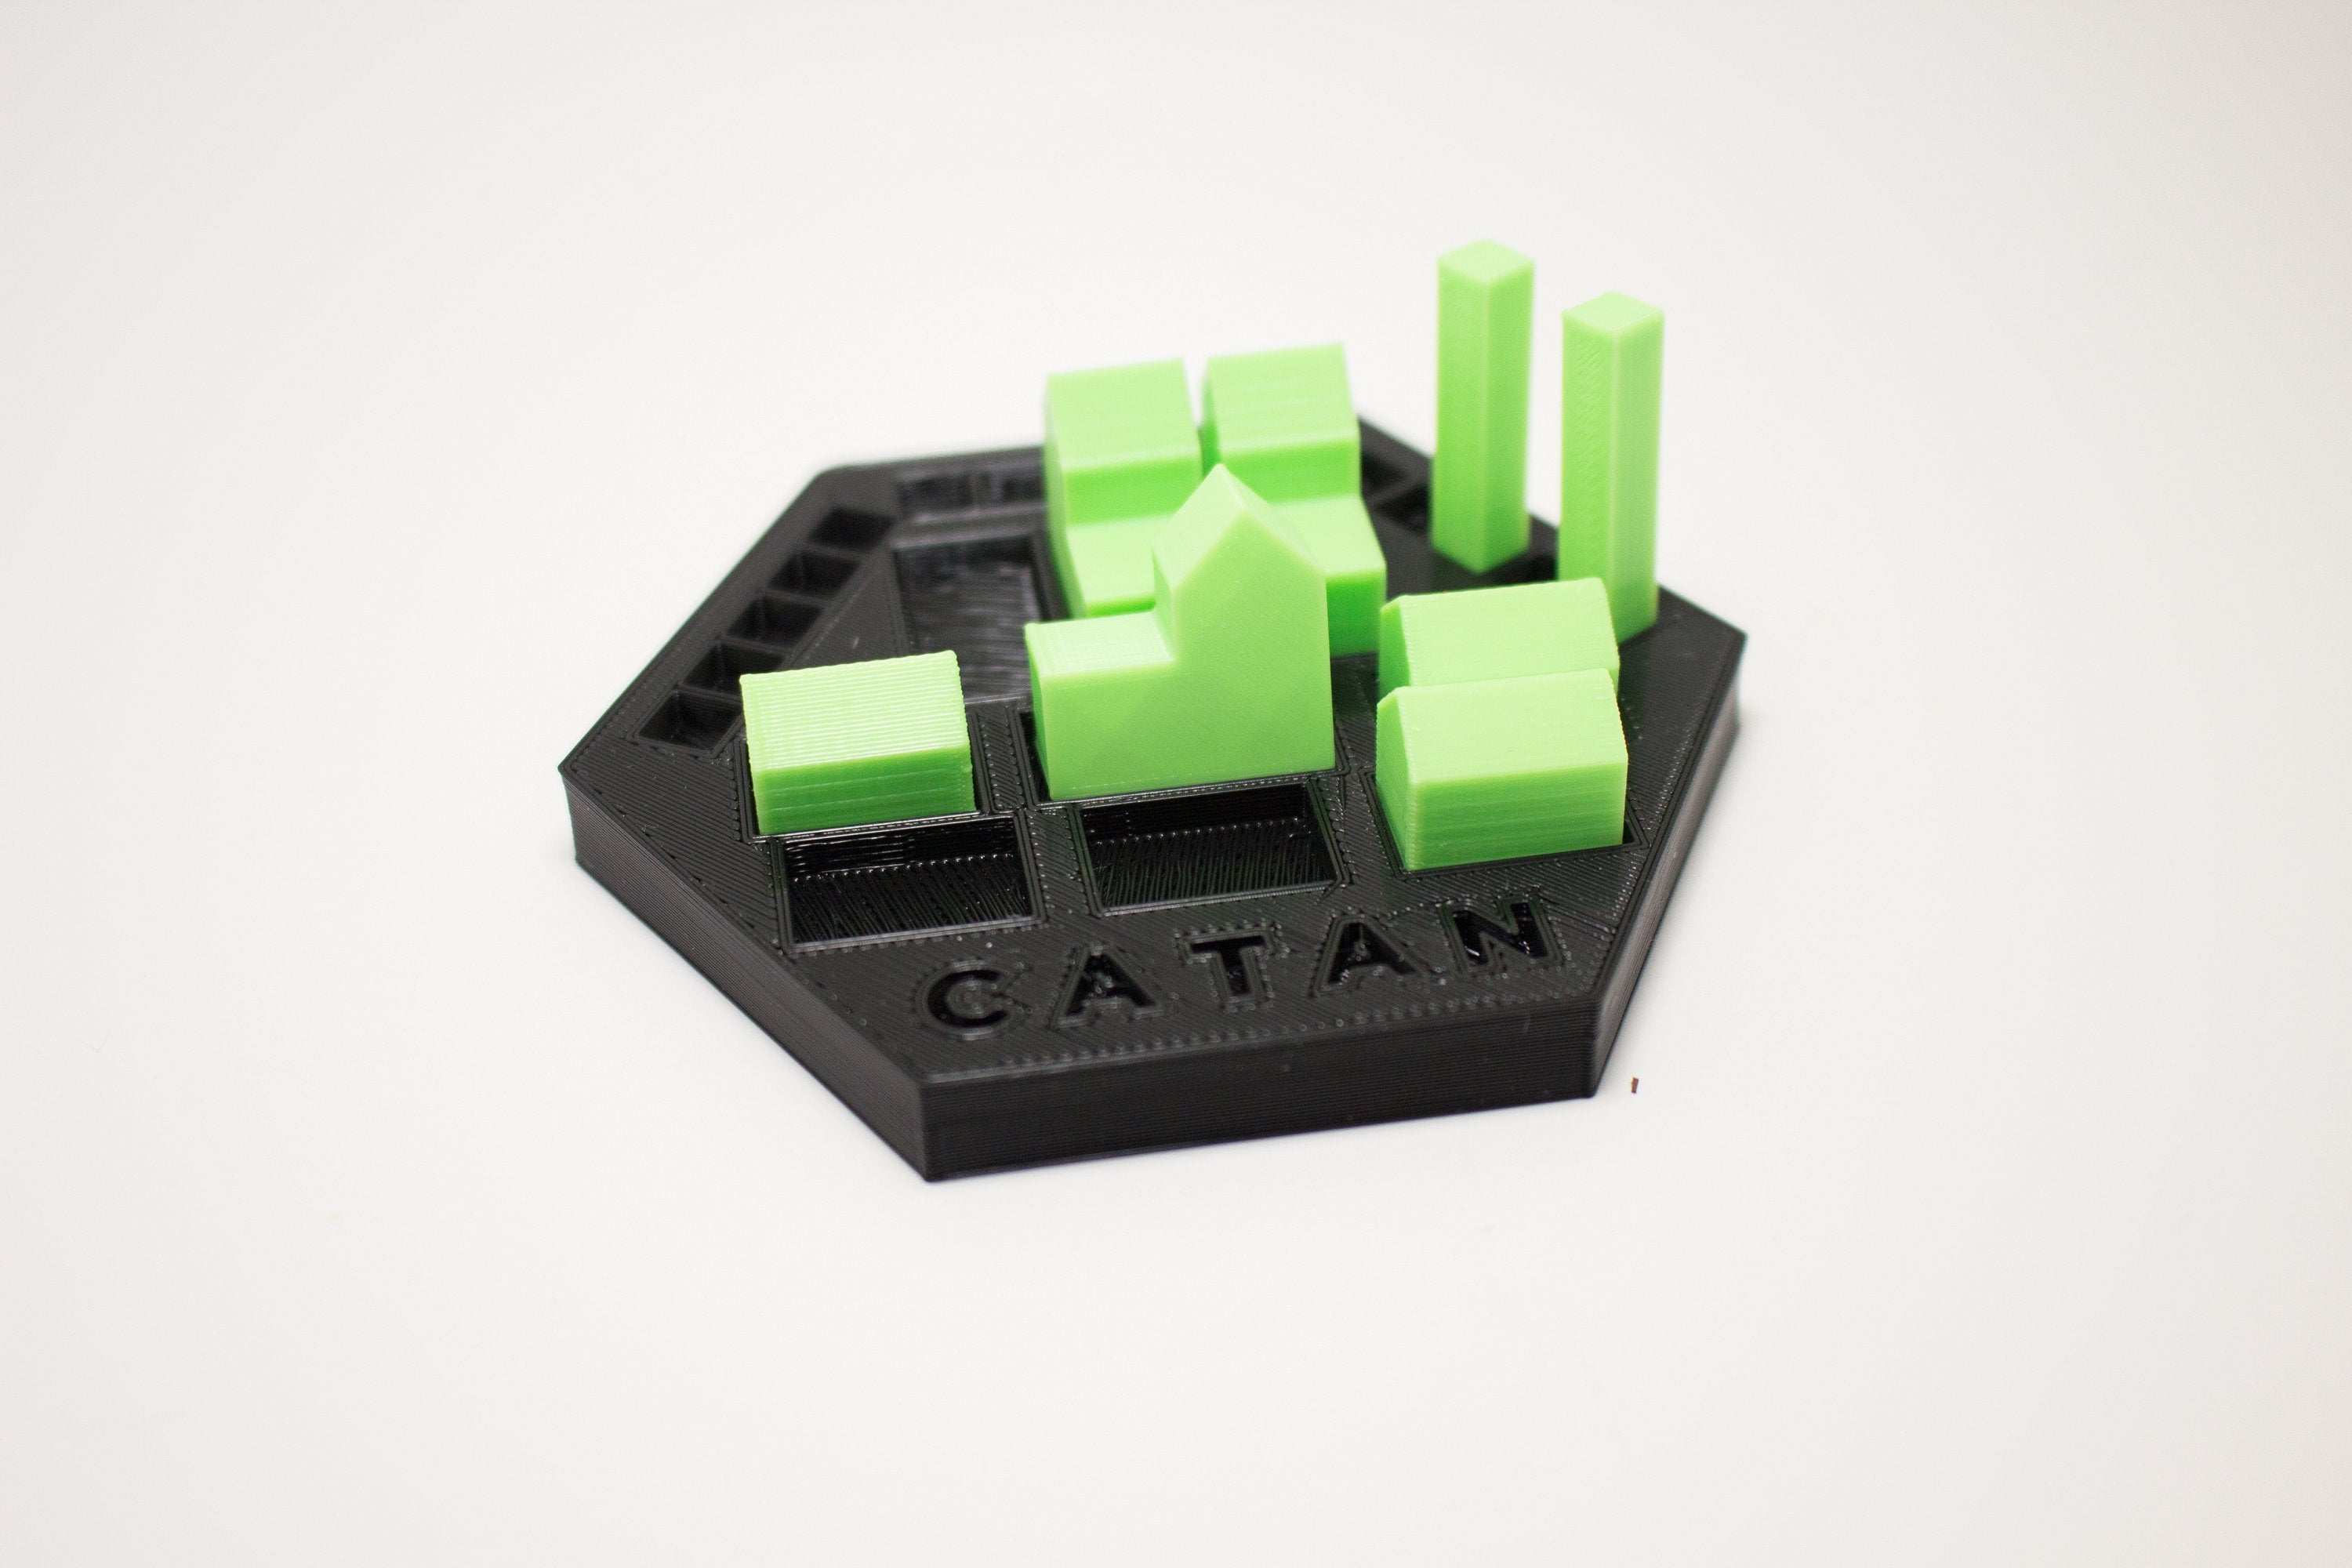 image relating to Settlers of Catan Printable referred to as Settlers of Catan Holder Organizer 3D Print